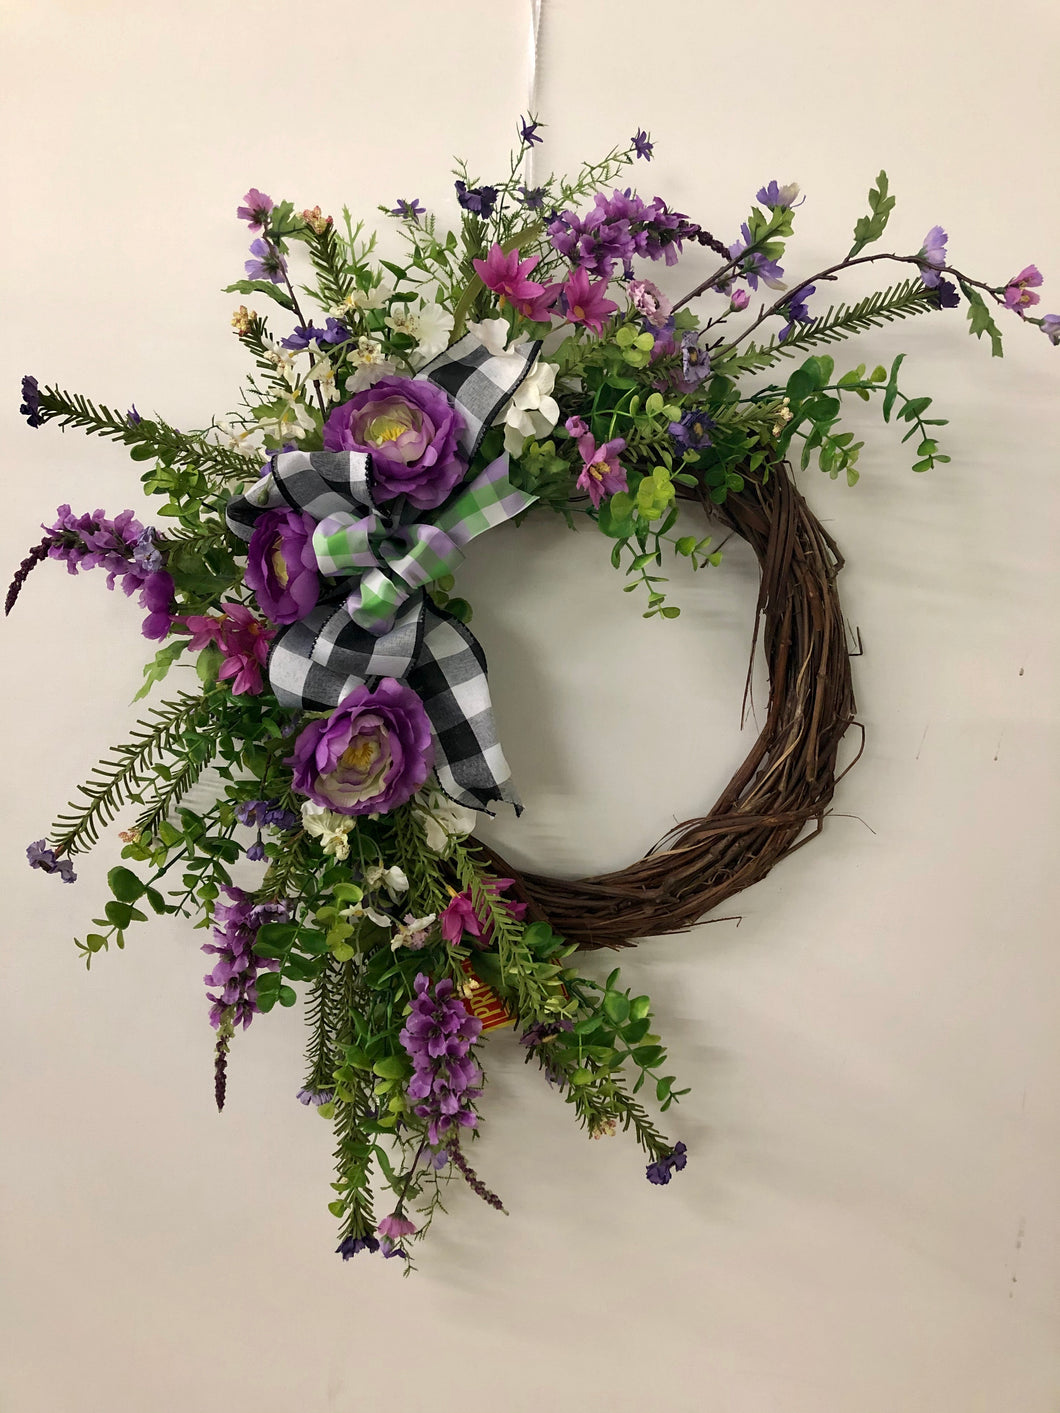 Gallery/Ver15 - April's Garden Wreath